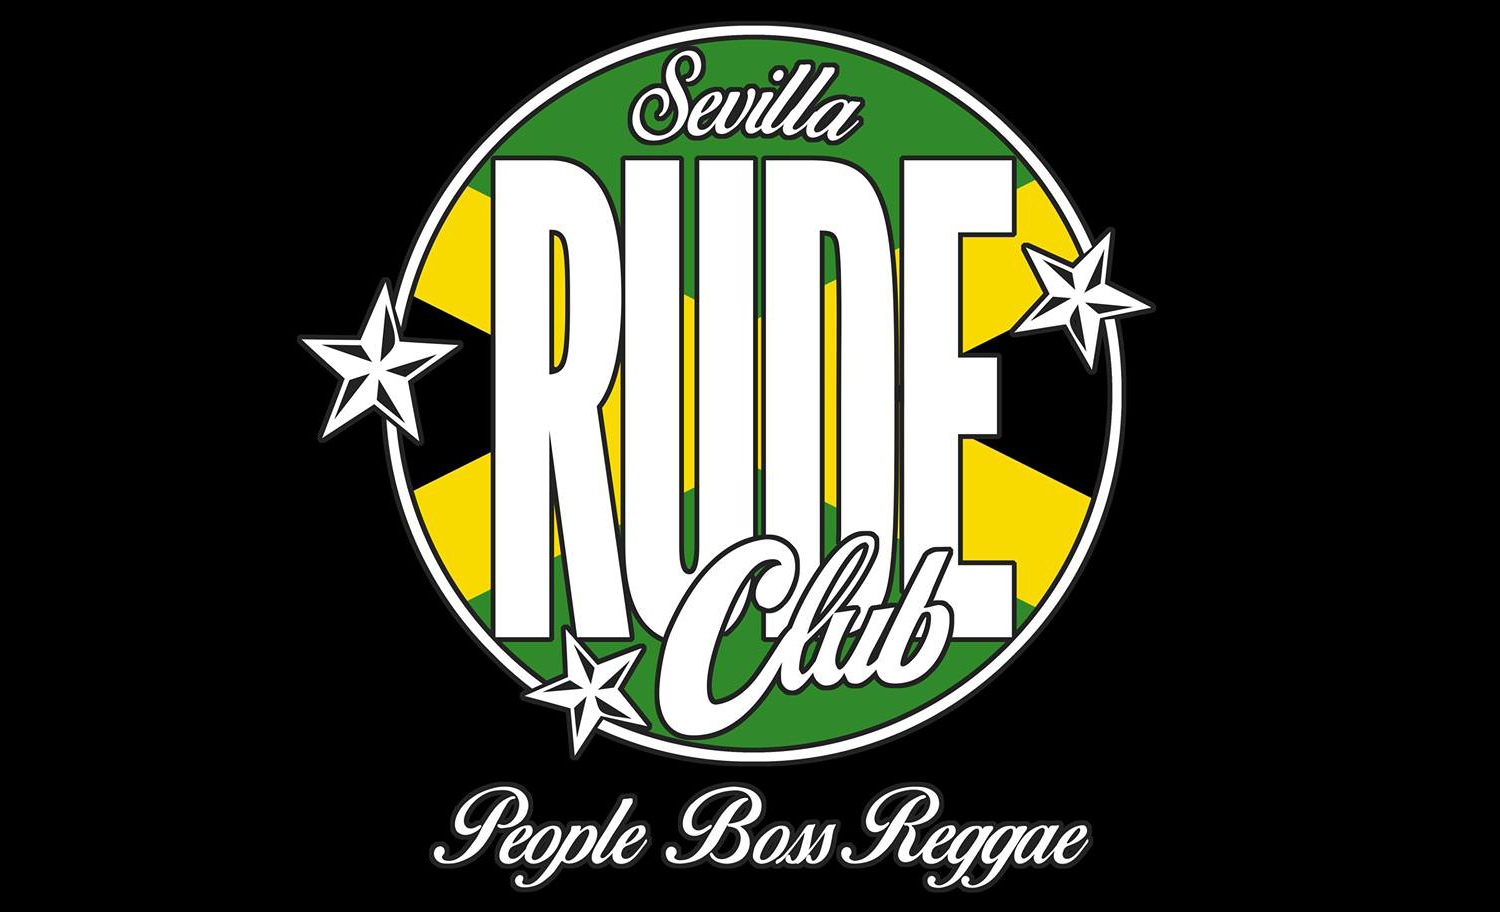 sevilla rude club banner